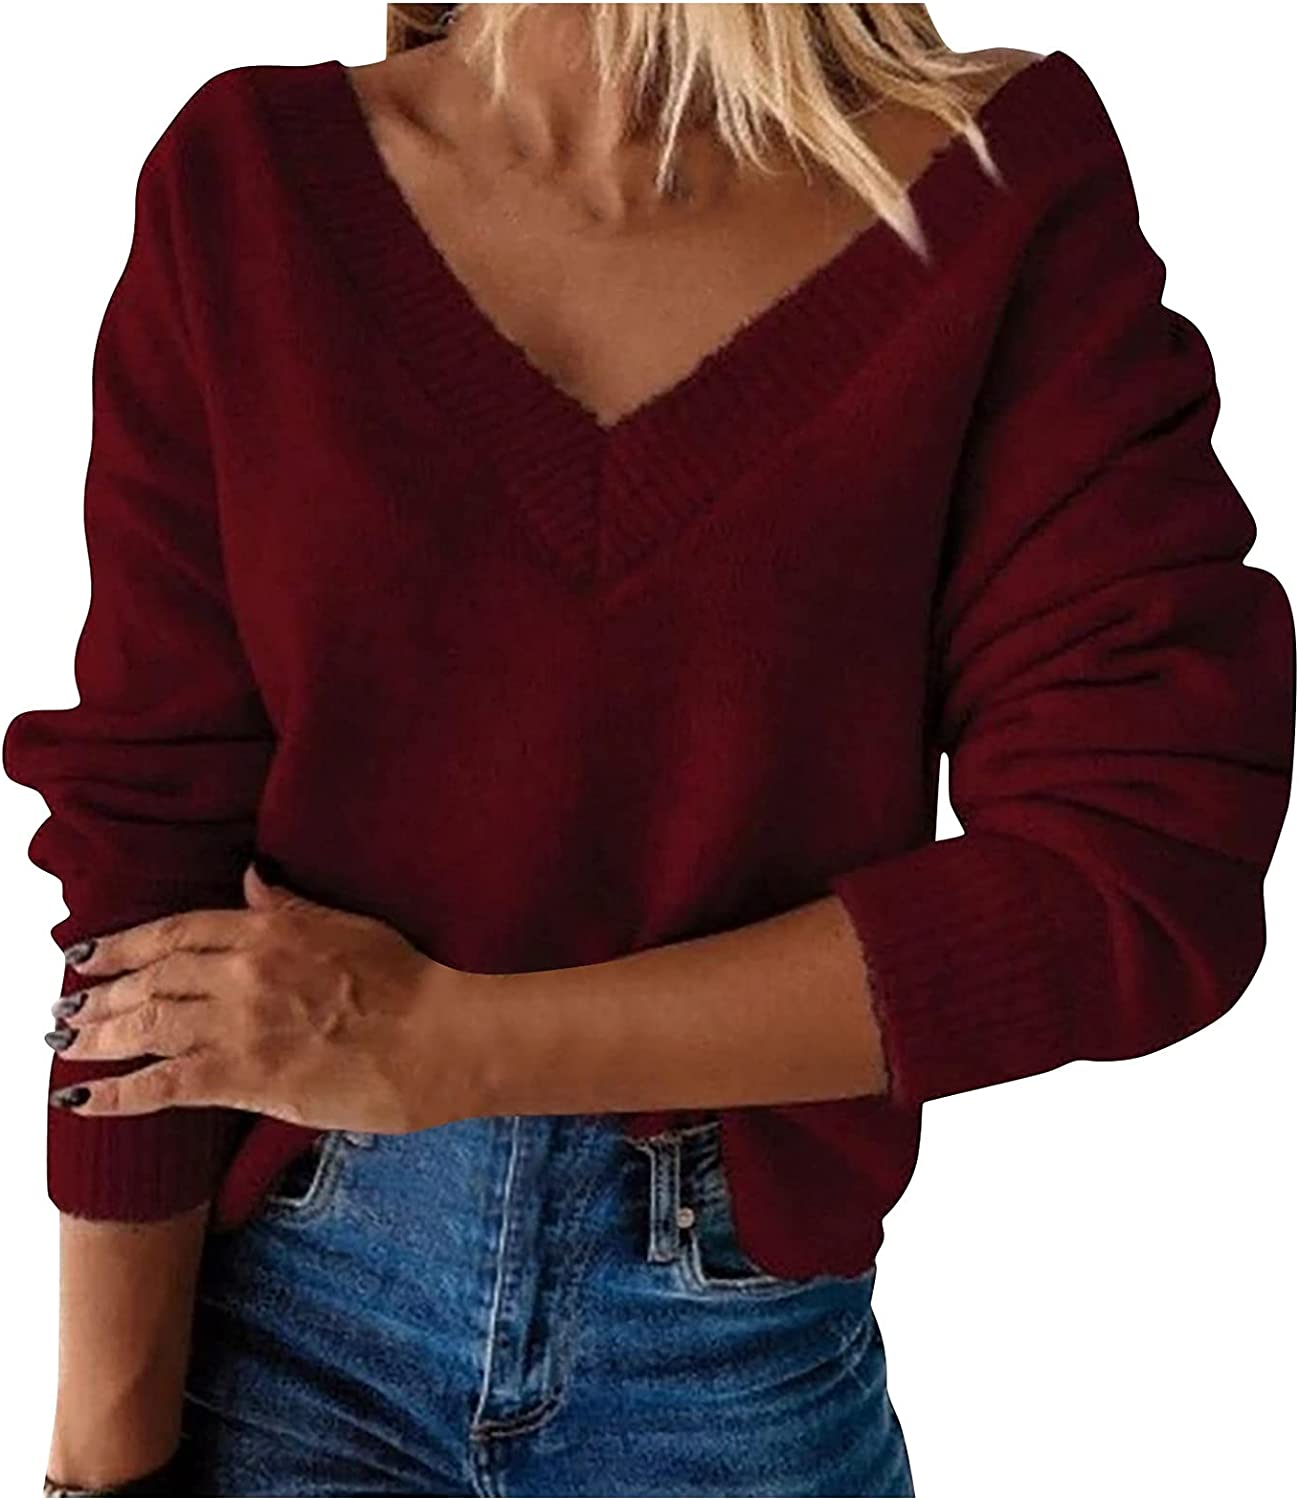 MINEMIN Knit Pullover Sweater Women Sheep Fleece Long Sleeve V-Neck Solid Color Loose Sweaters